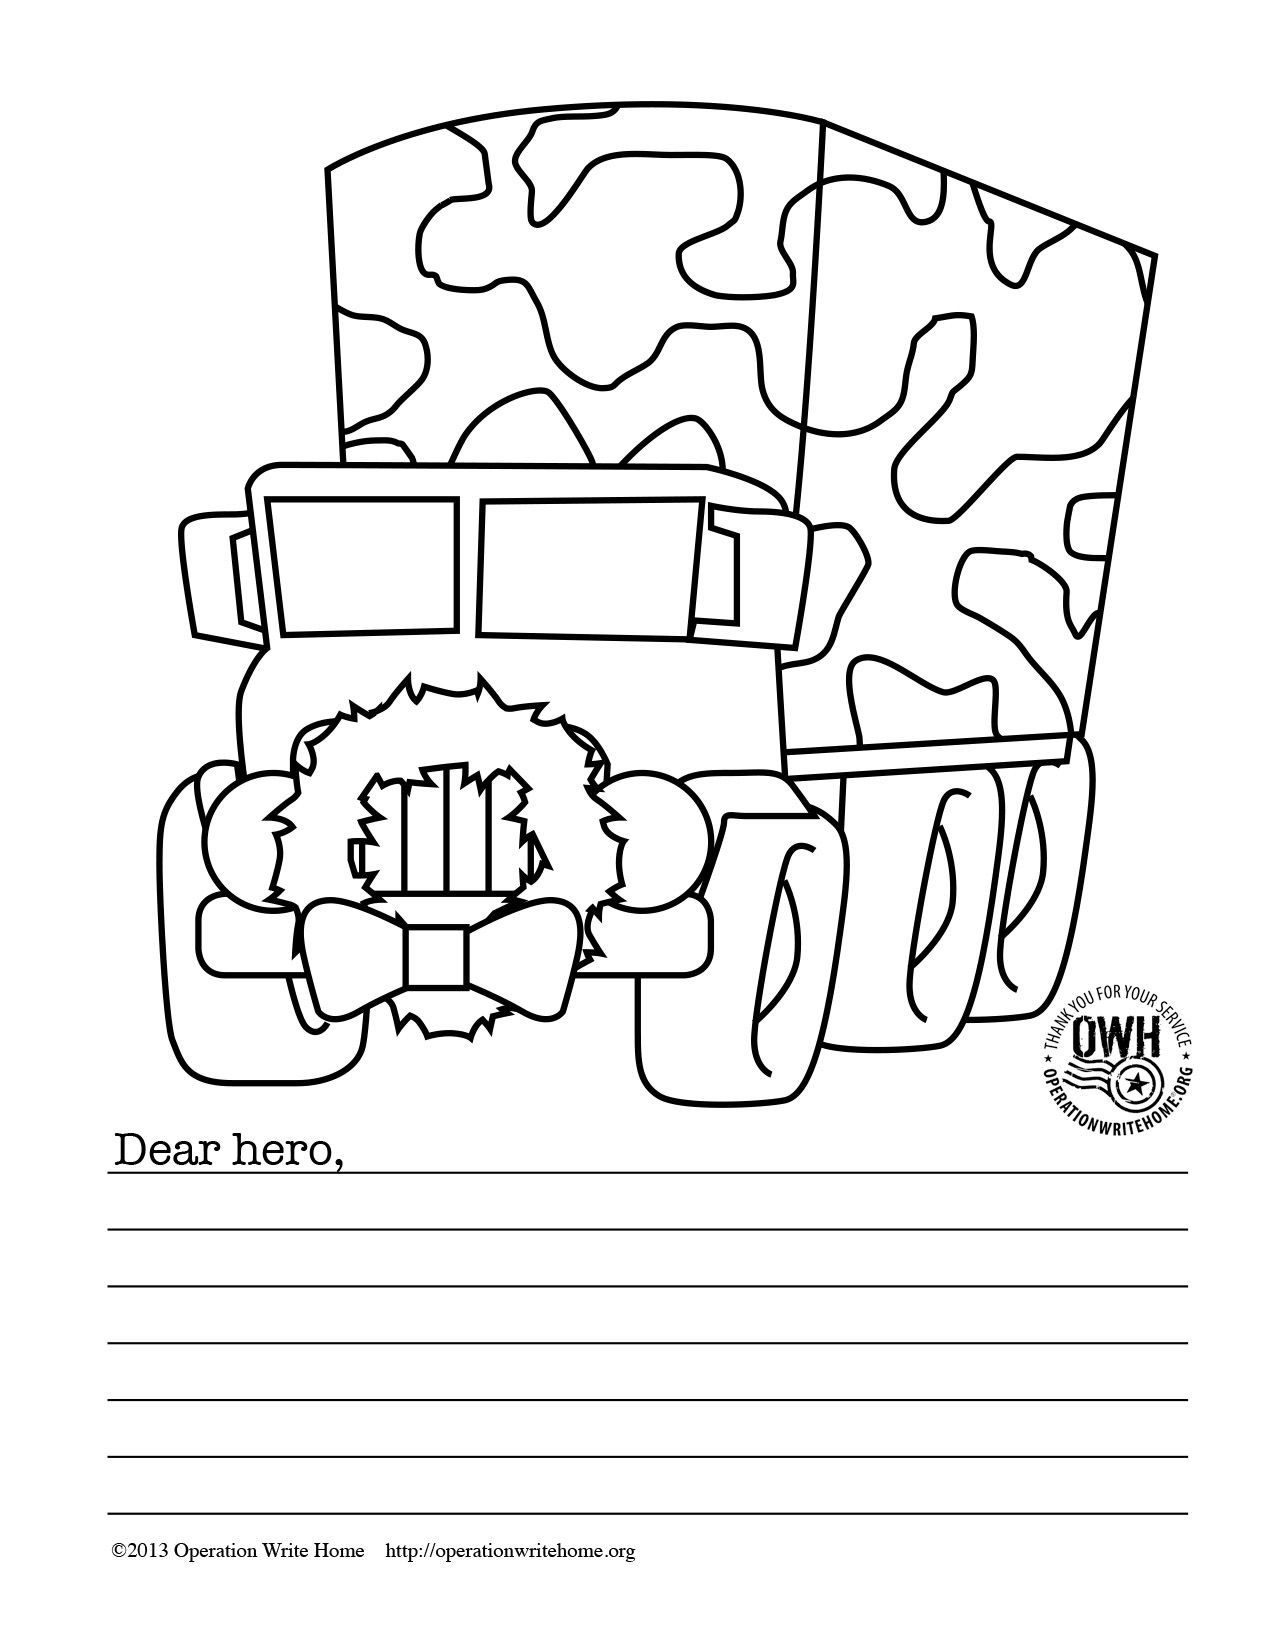 Merry Christmas Teacher Coloring Pages With FREE Military For Operation Write Home